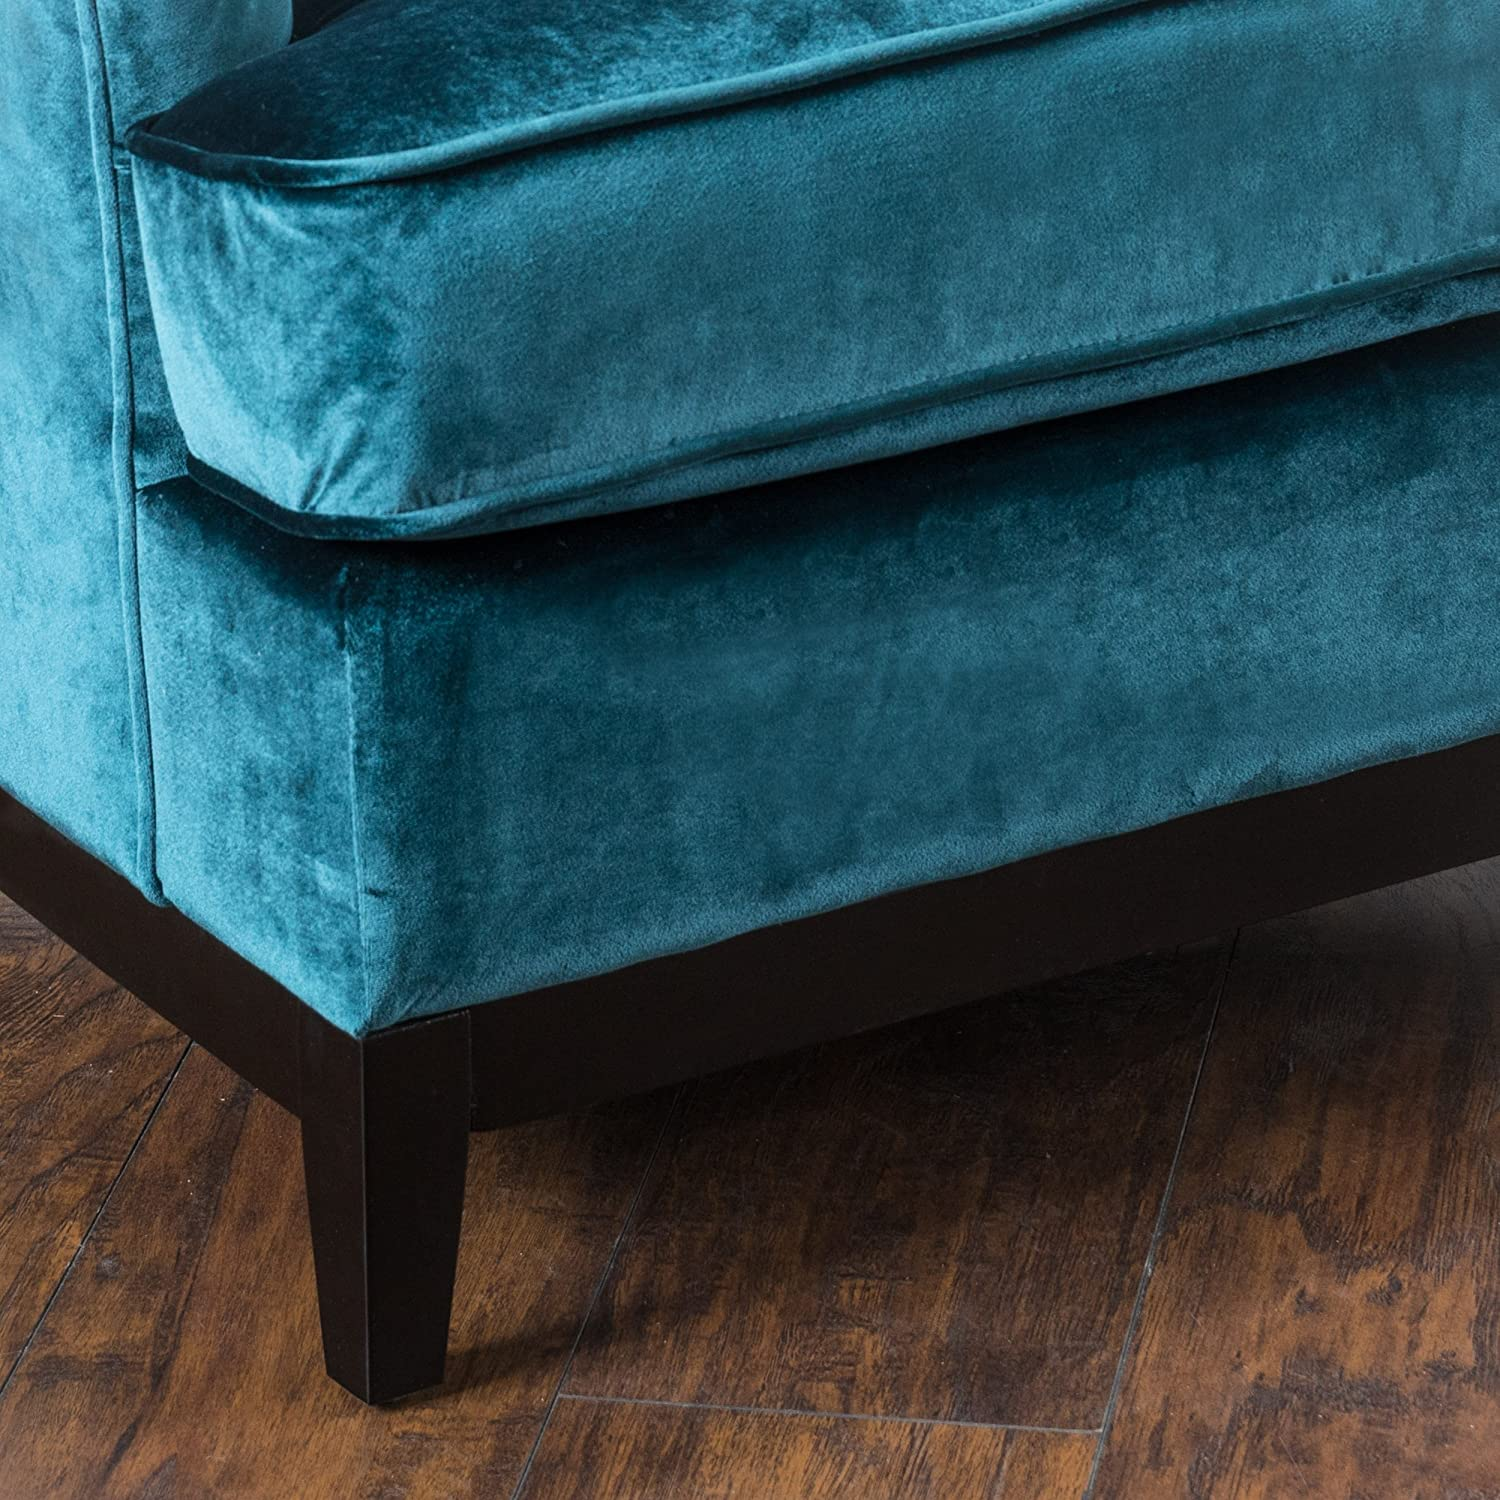 Amazon: Anabella Teal Blue Fabric Tufted Sofa Chair: Kitchen & Dining